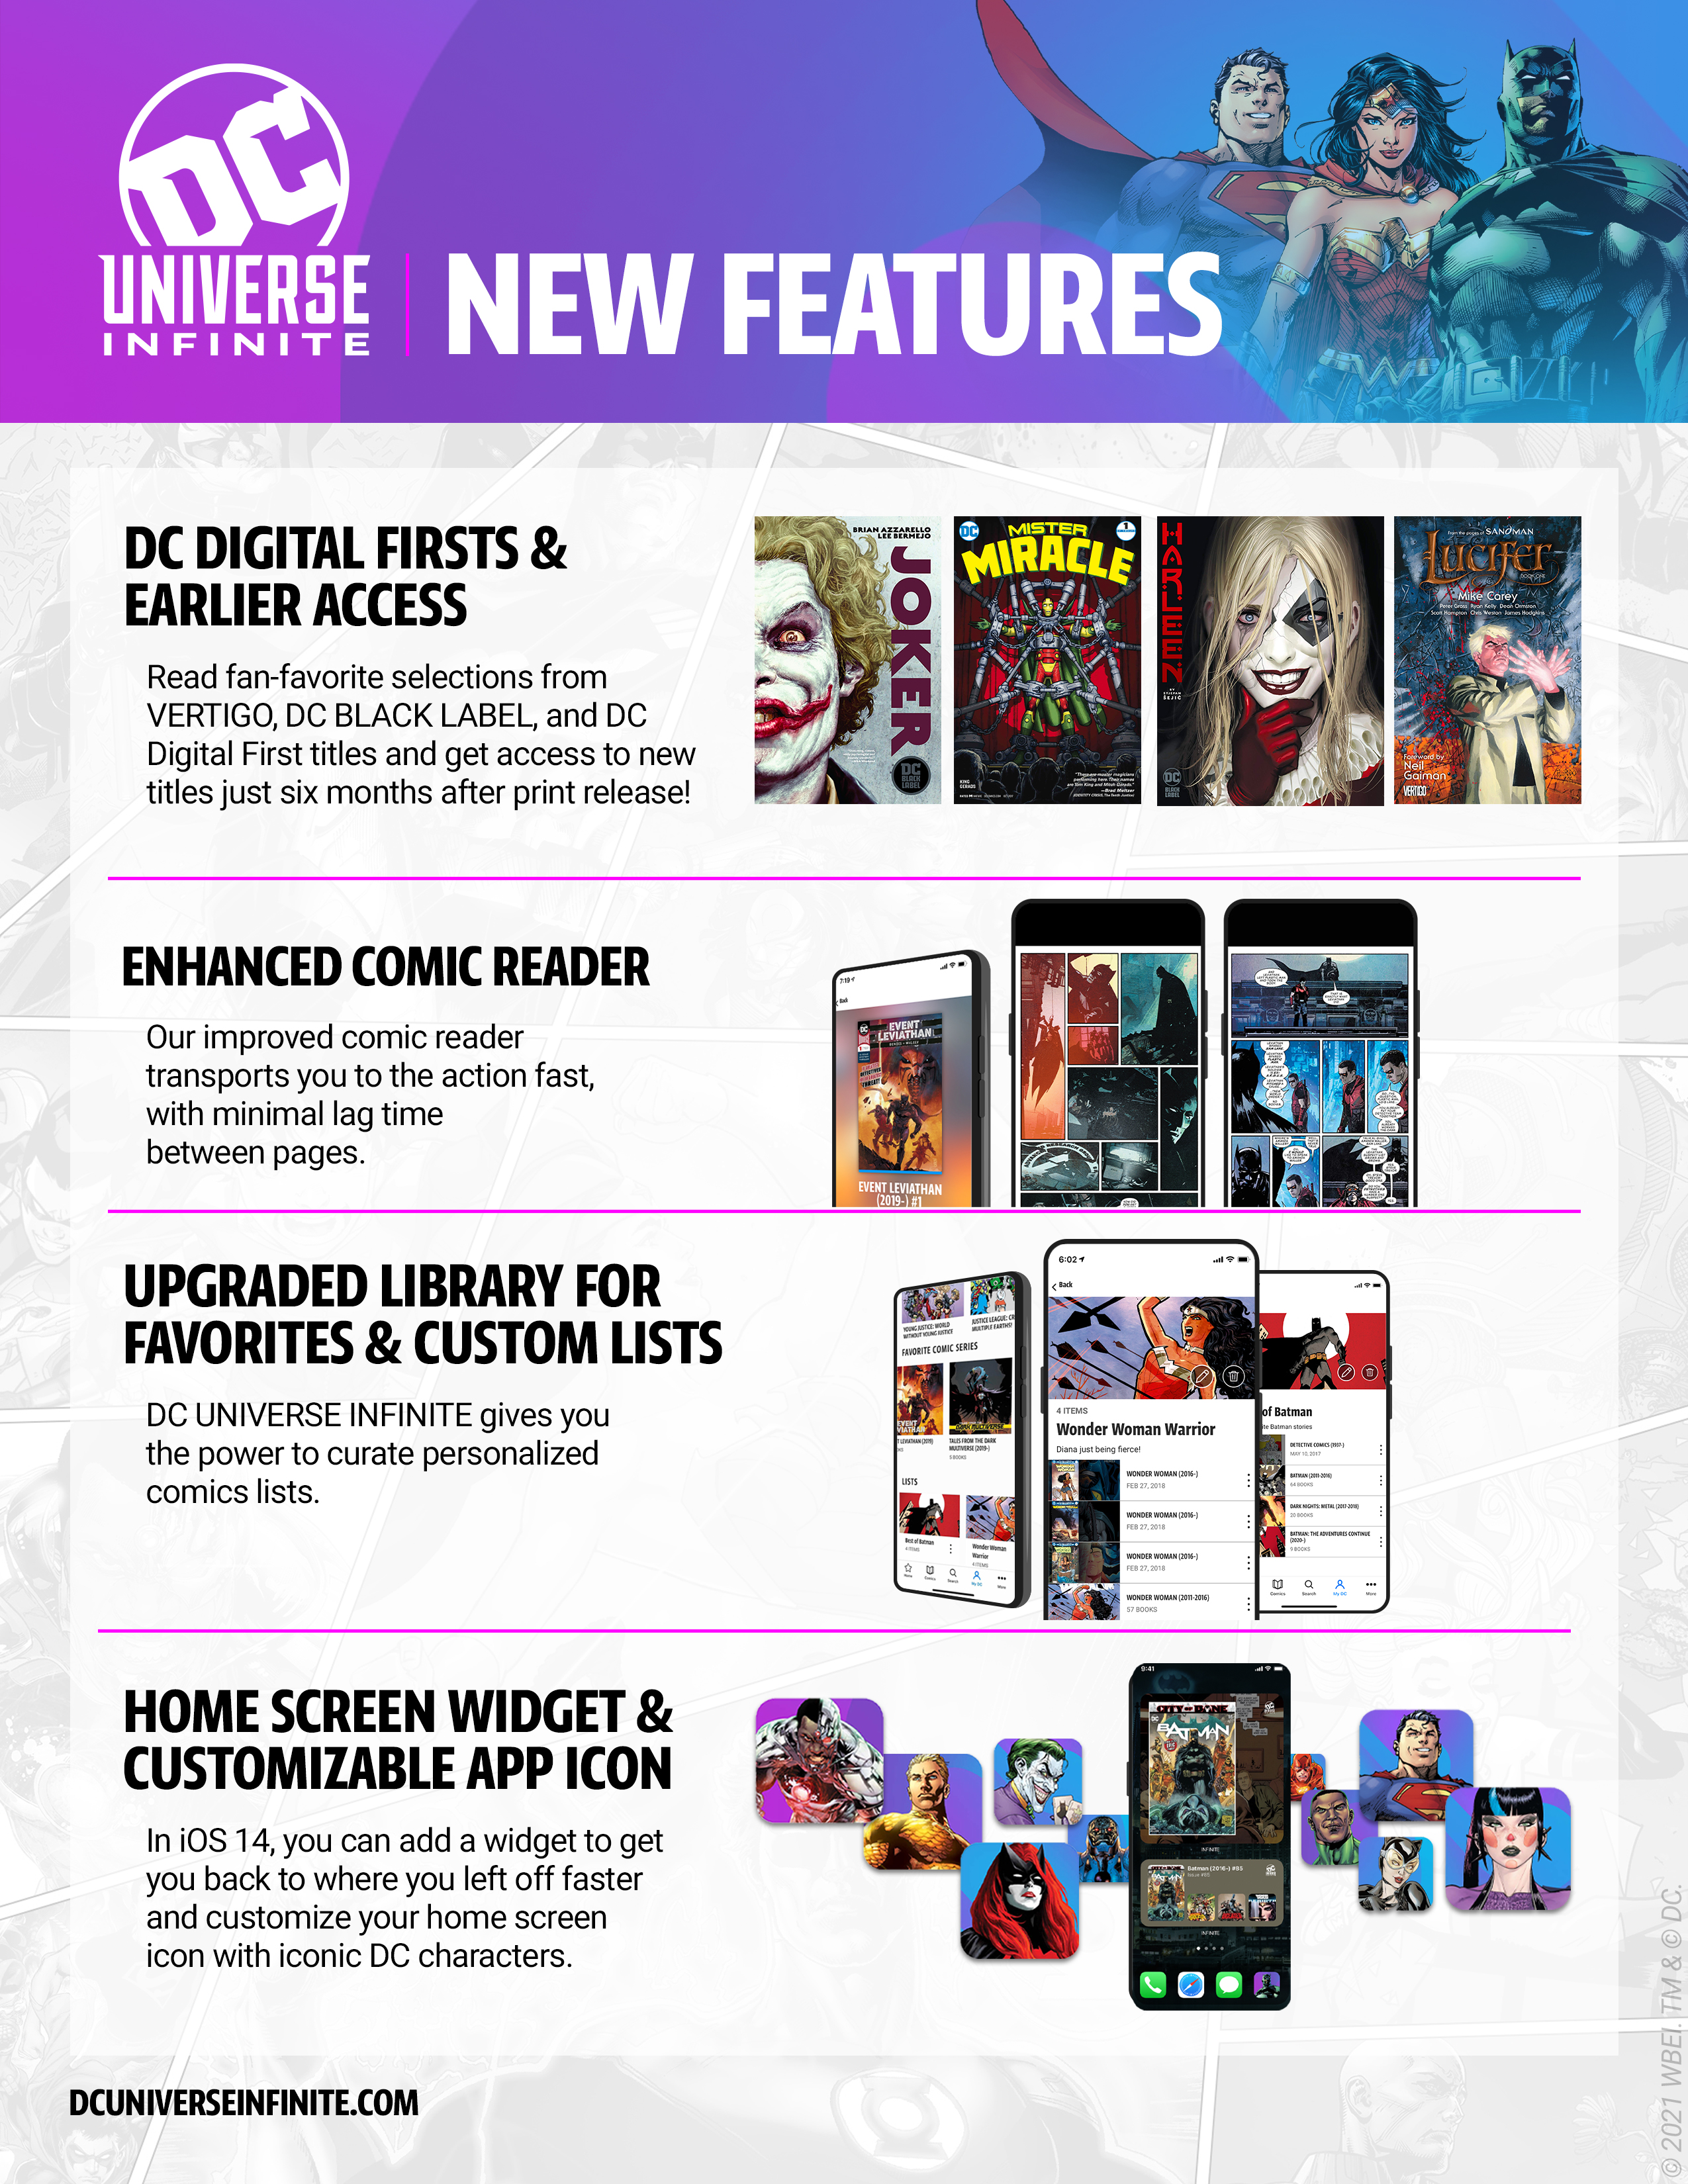 How DC Universe Infinite Brings Welcome Changes to the Digital Comics Reading Experience